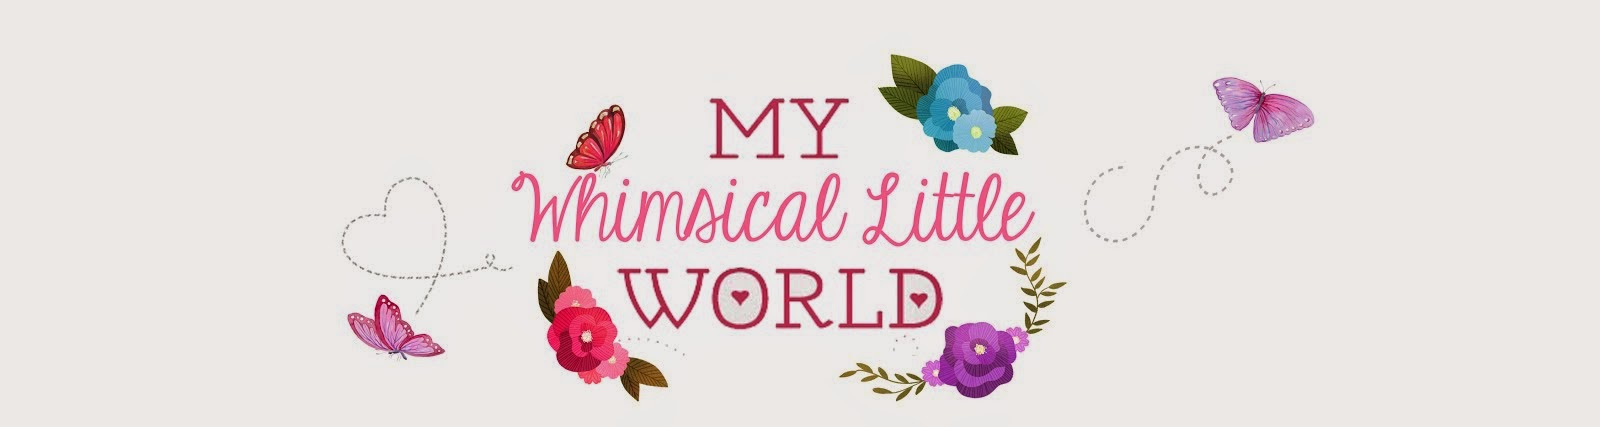 My Whimsical Little World